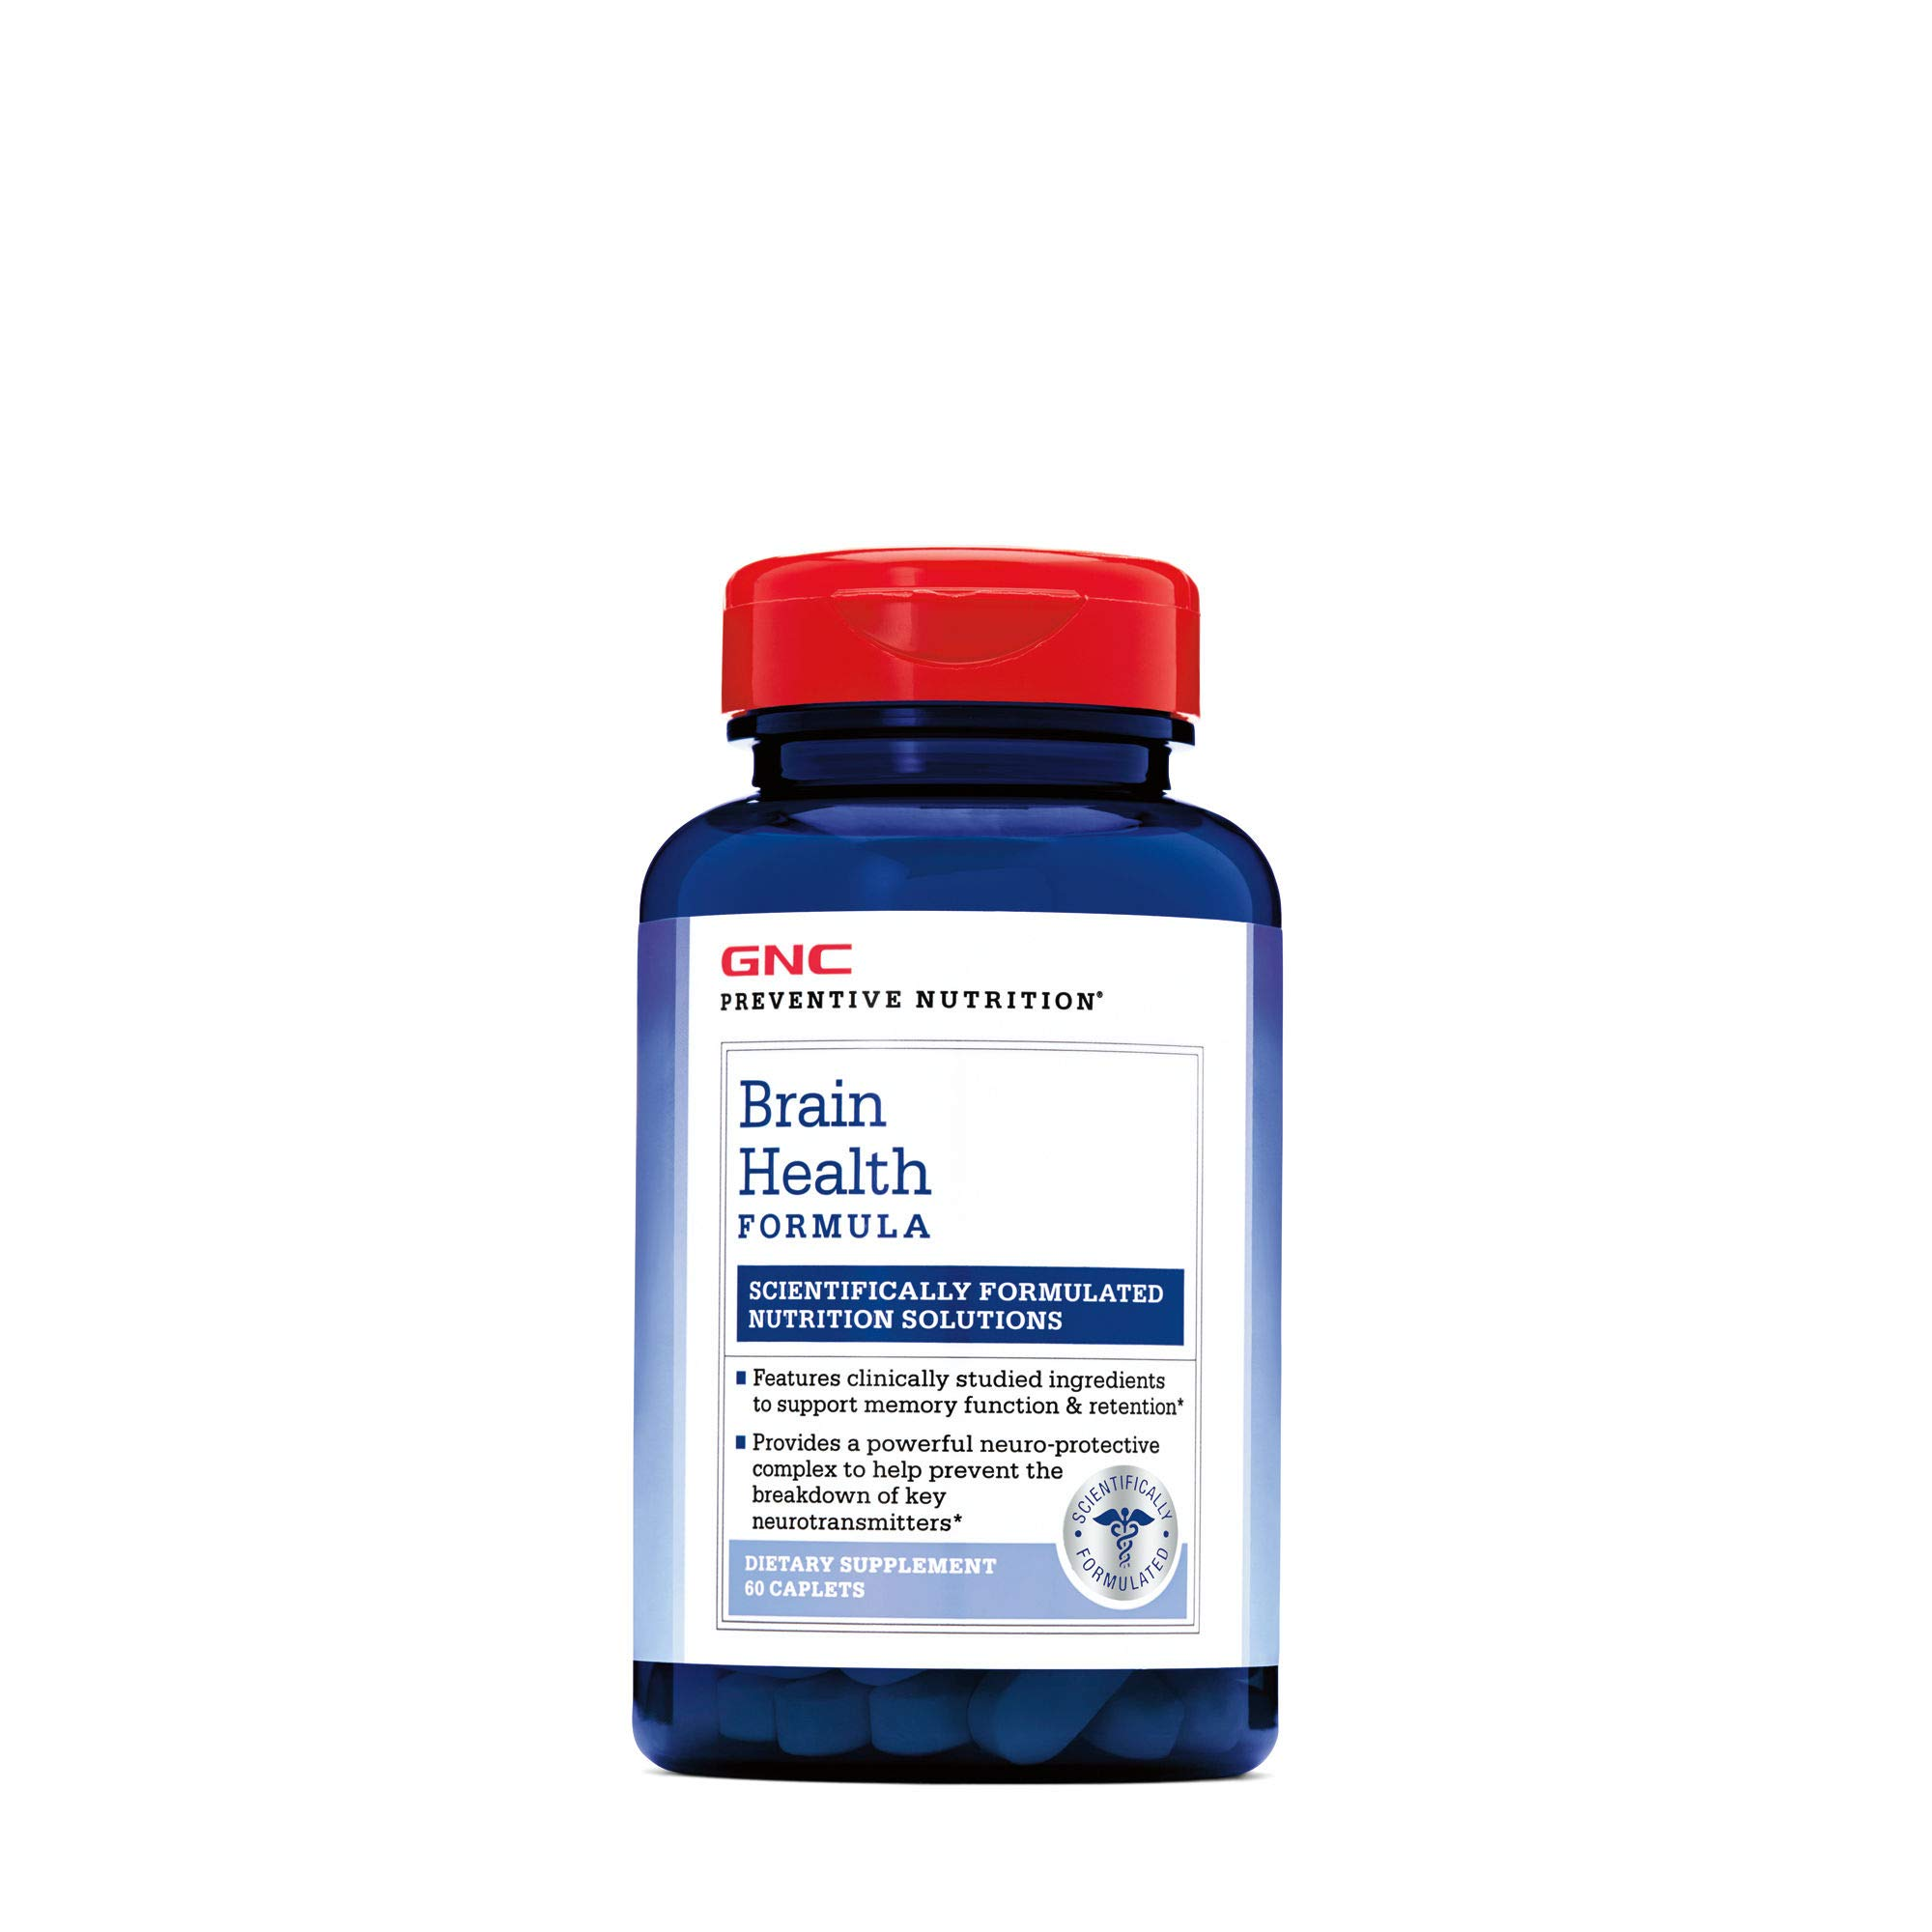 GNC Preventive Nutrition Brain Health Formula with Huperzine A, Choline Tyrosine by GNC (Image #3)